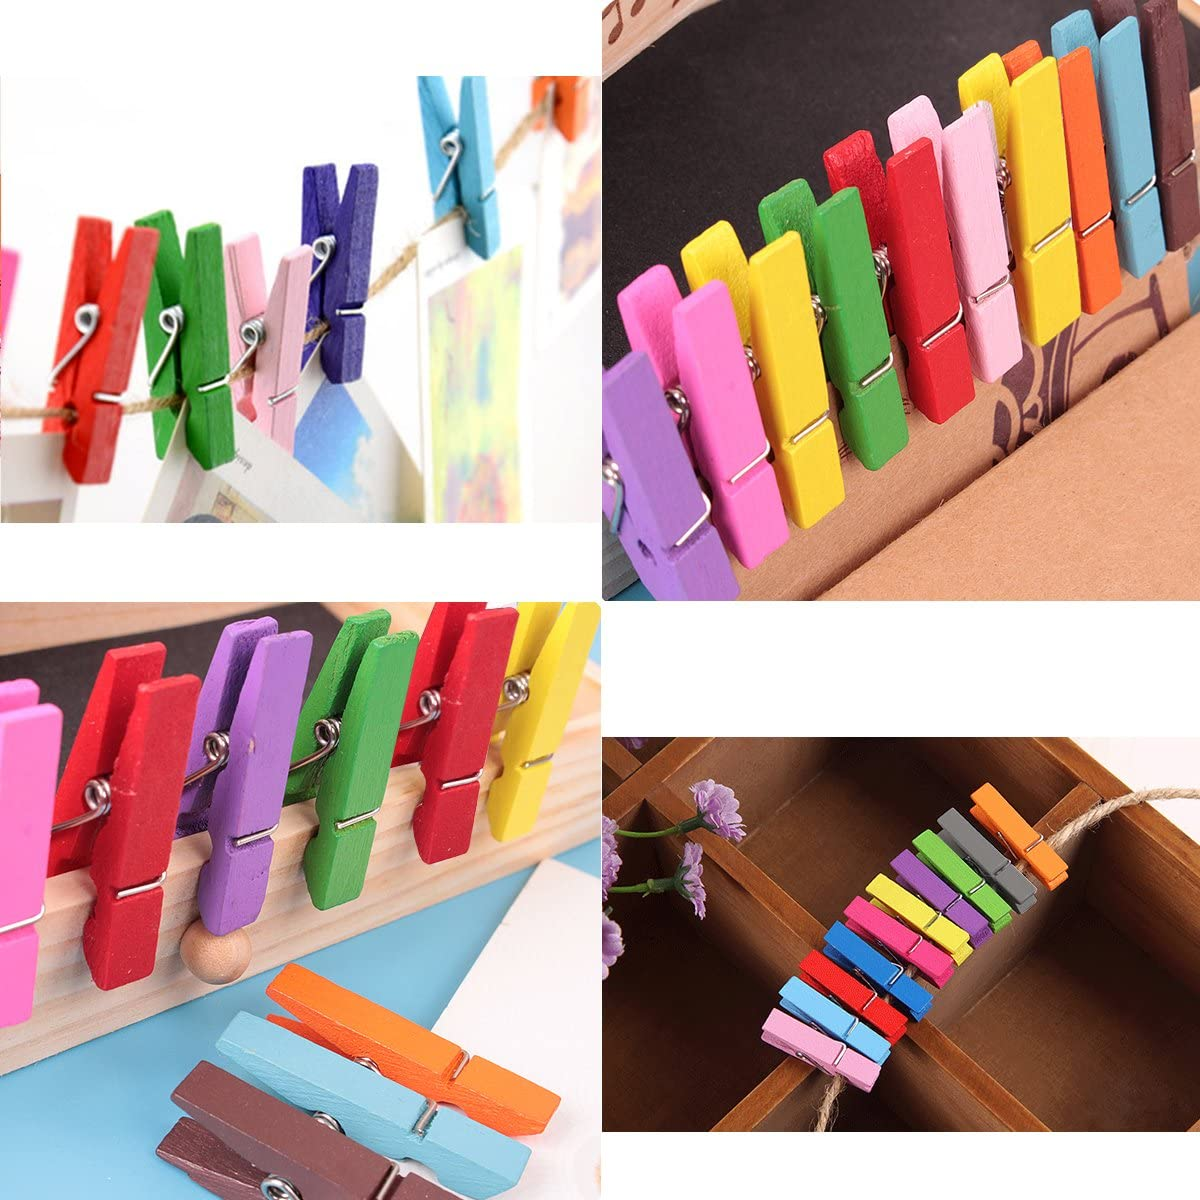 Color Wooden Clothespins Durable Clothes Pegs Pins,Colorful Photo Clip for Photos Pictures Crafts 40pcs (Random Color)